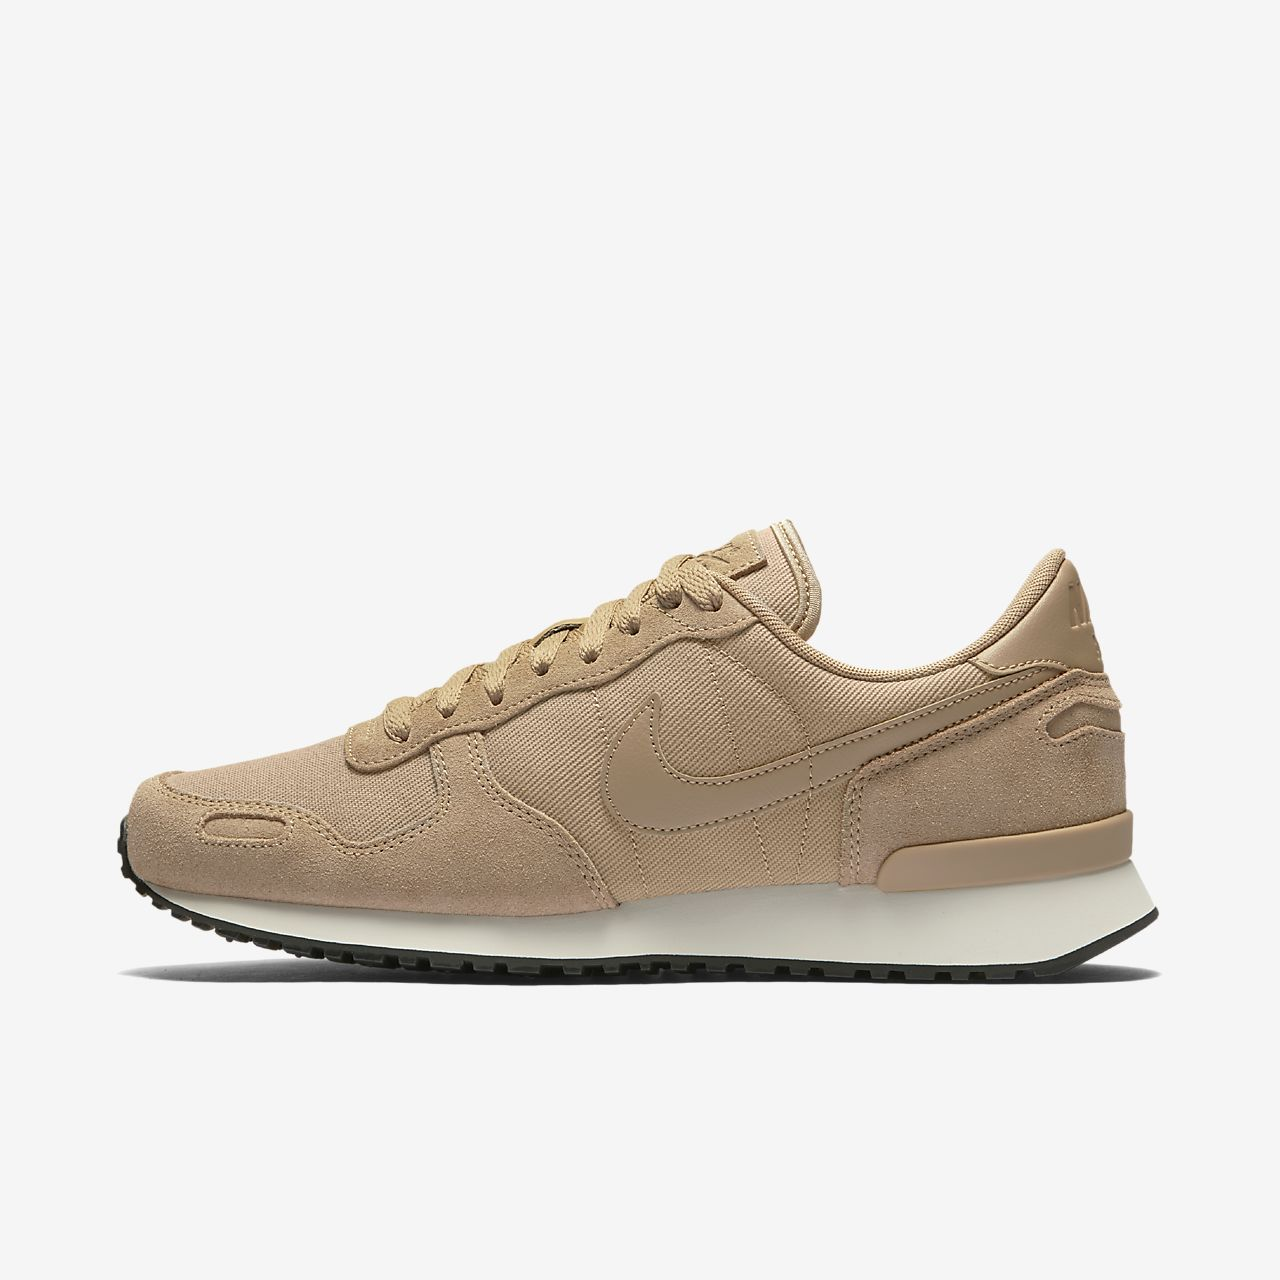 nike internationalist leather men's shoe nz